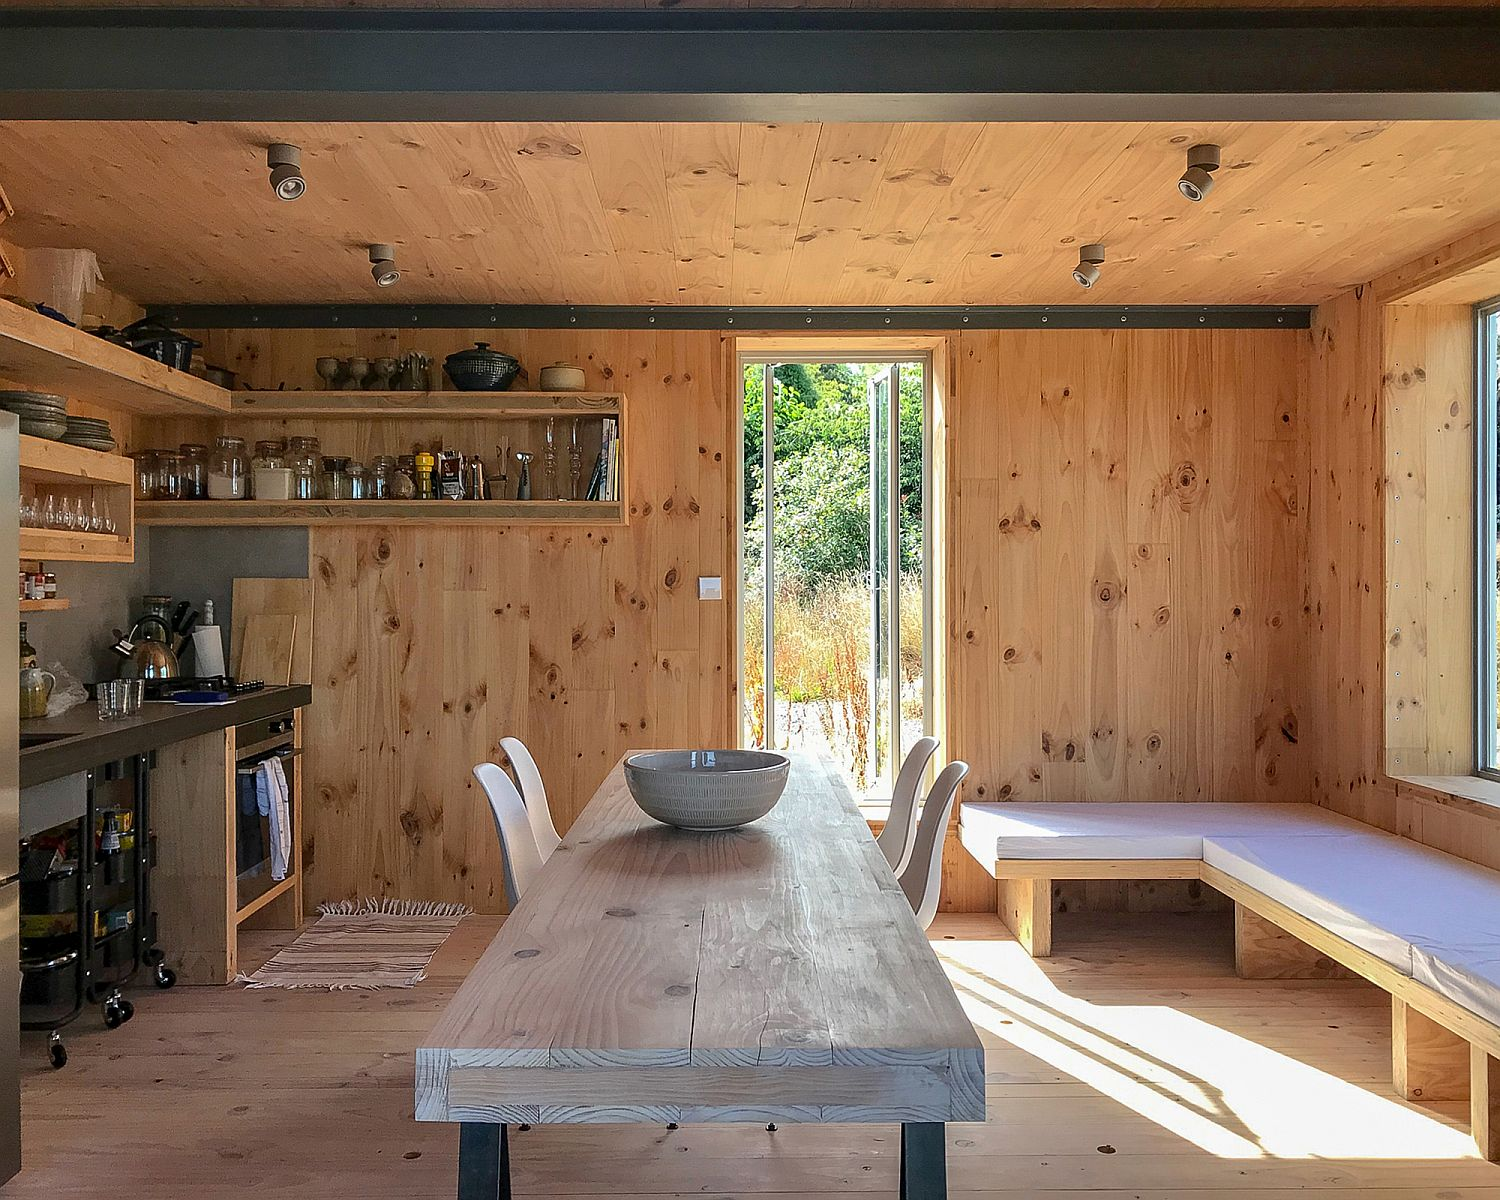 Small kitchen and tiny dining area of the cabin that opens up to the outdoors